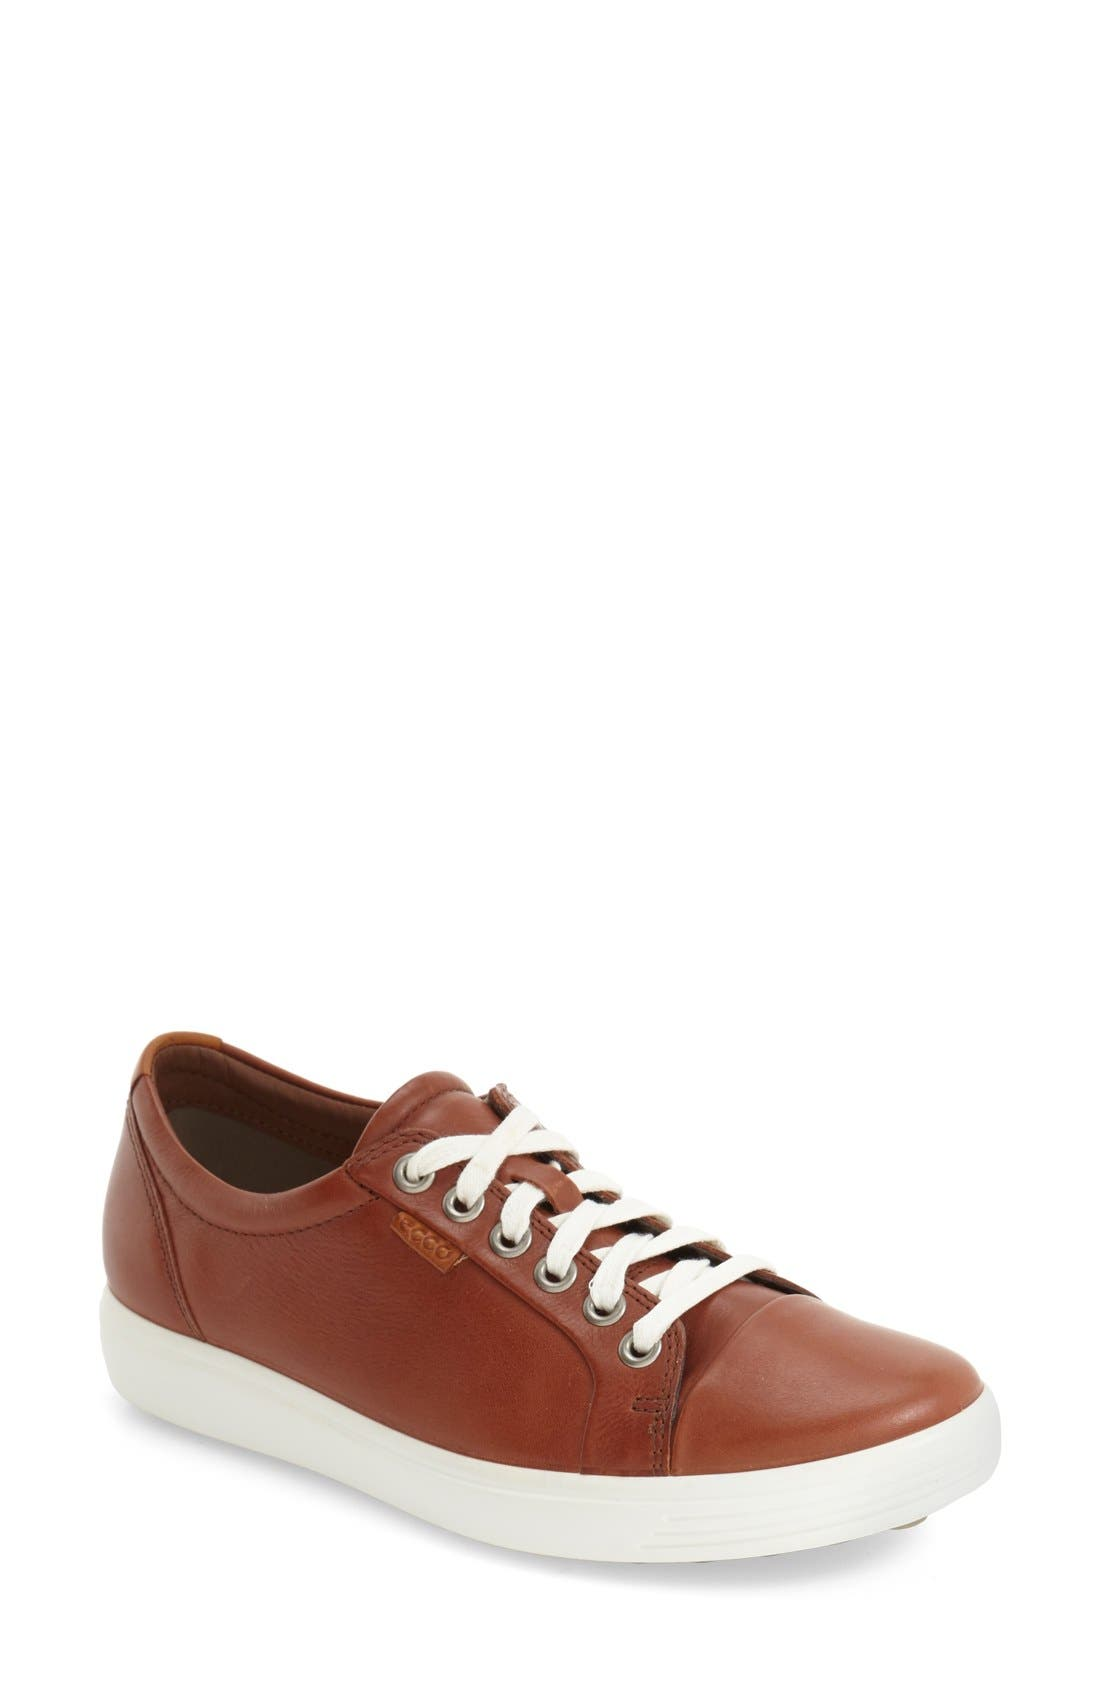 Alternate Image 1 Selected - ECCO 'Soft 7' Cap Toe Sneaker (Women)